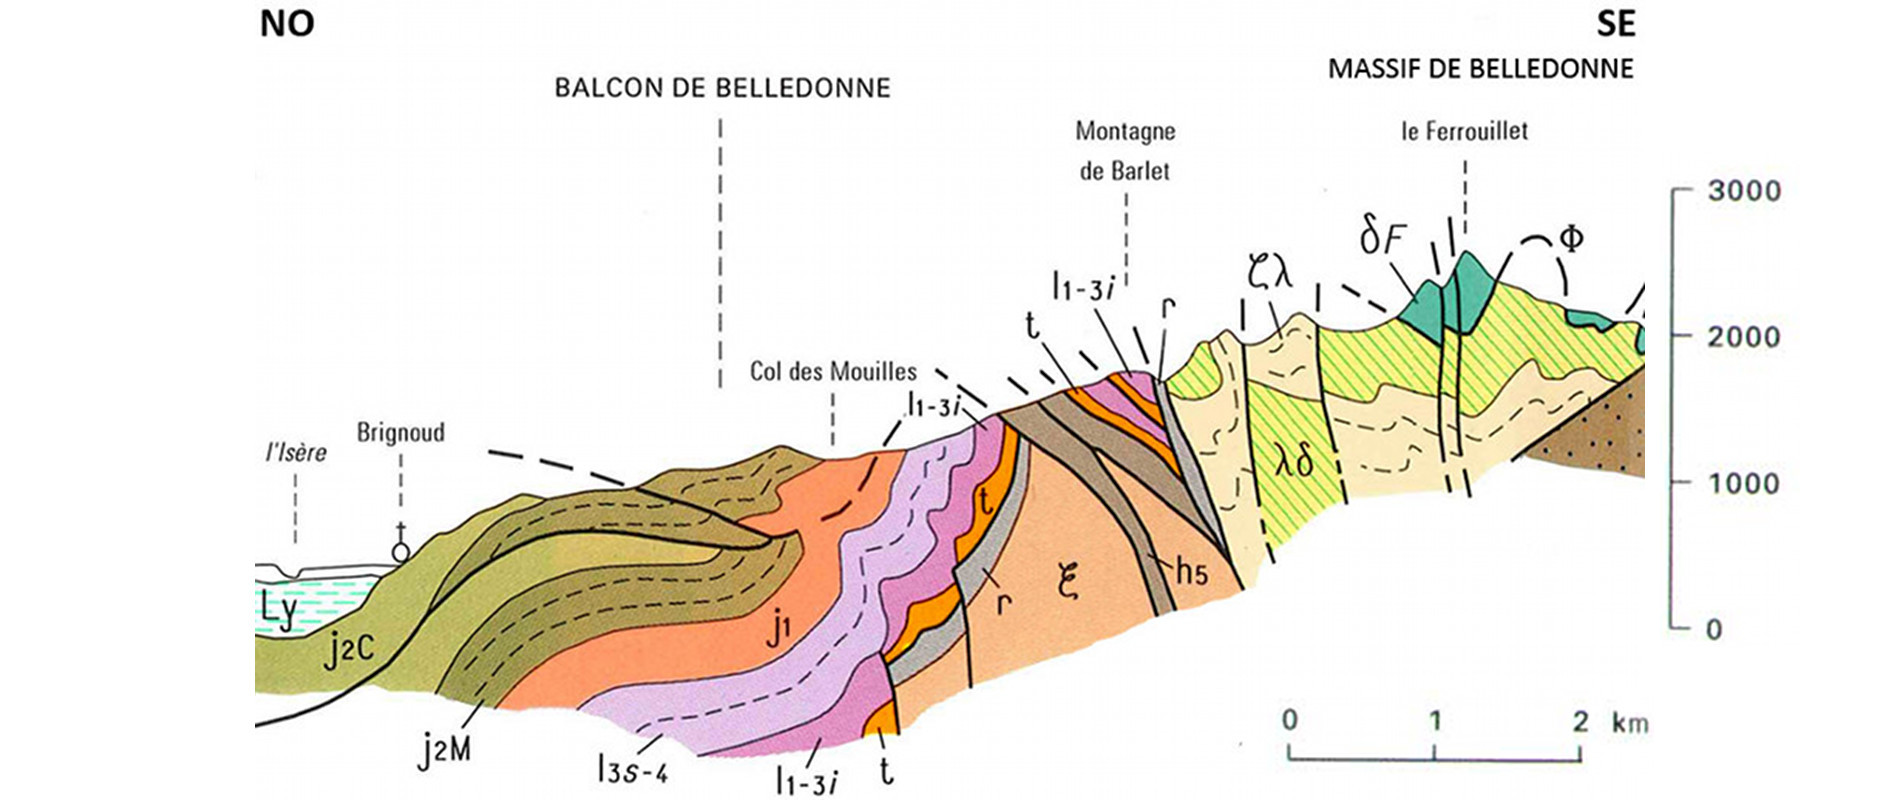 La bordure occidentale du massif de Belledonne